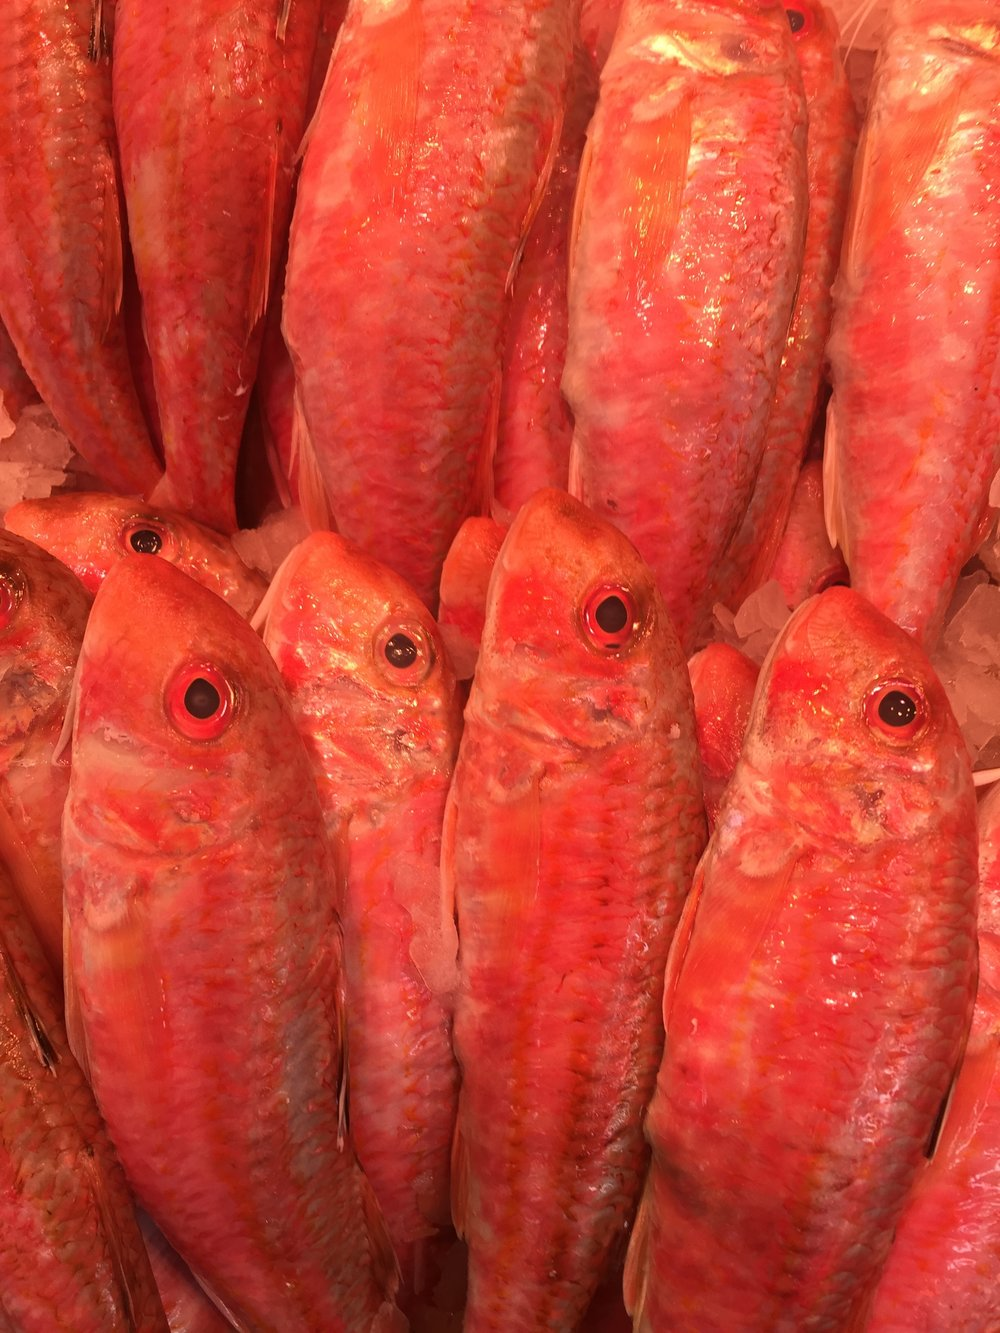 Red mullet, also known as Goatfish, at the Albert Cuypmarkt, Amsterdam.